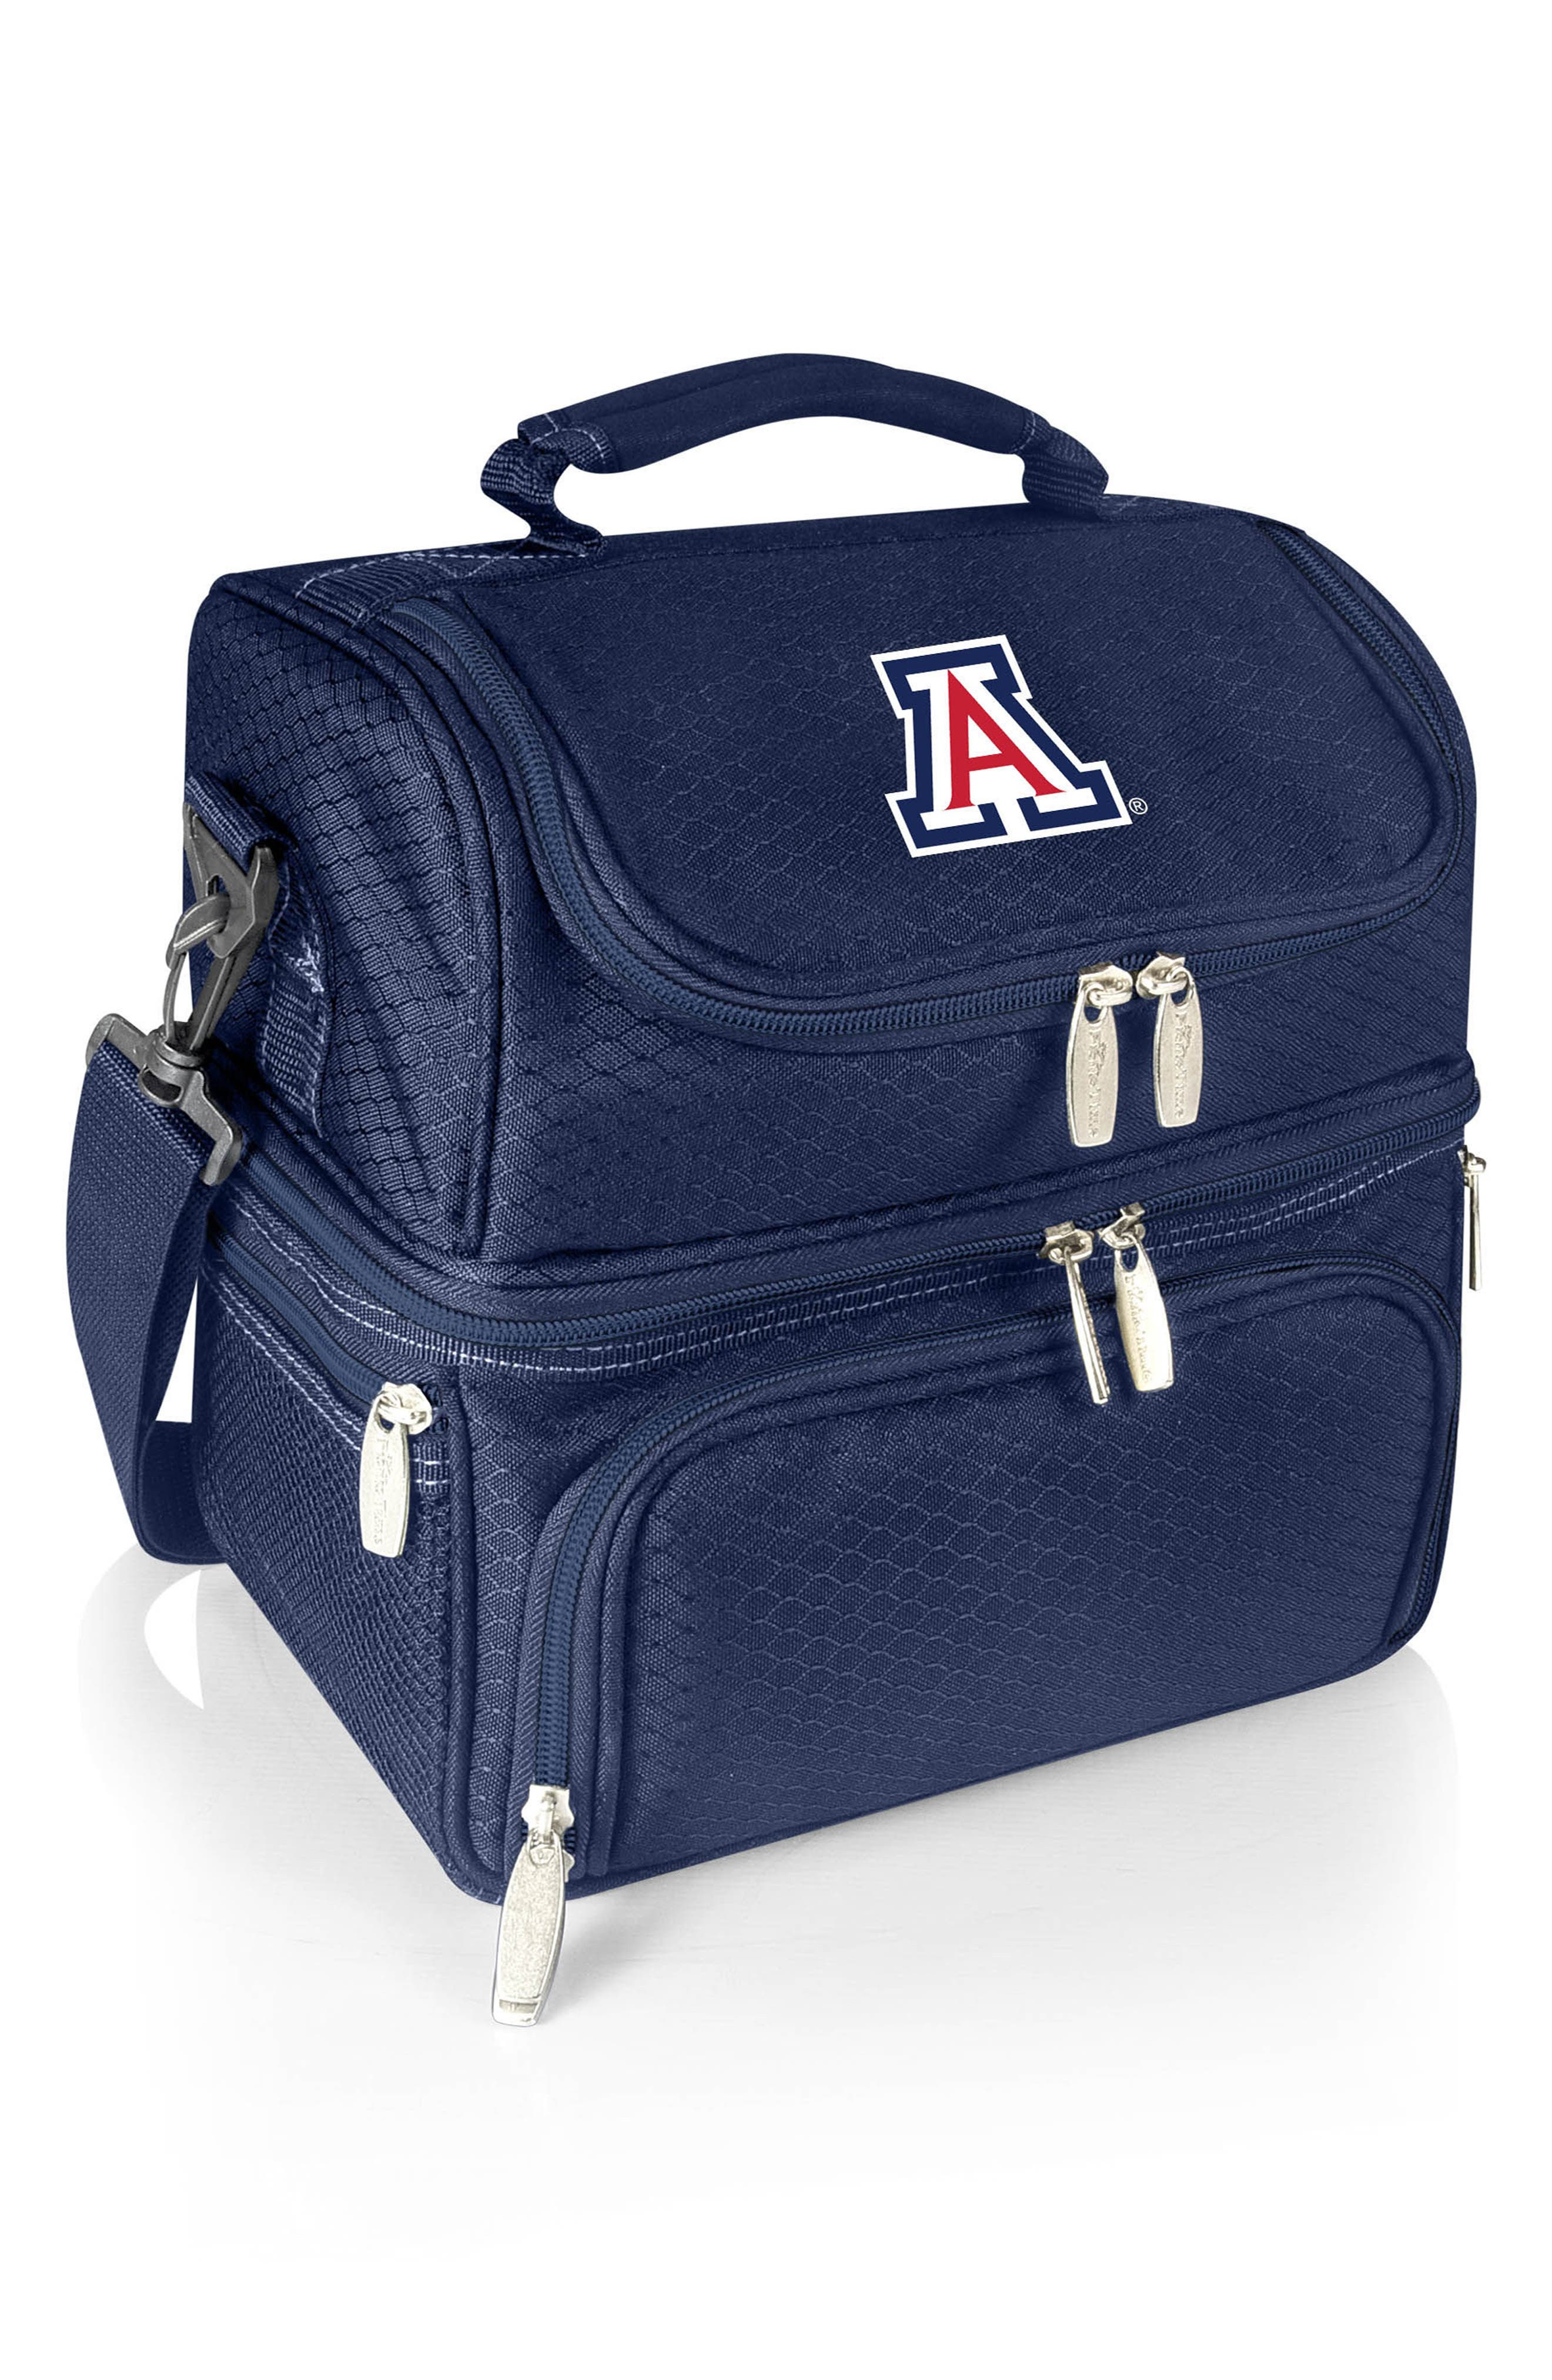 Navy Pranzo College Team Logo Lunch Tote,                         Main,                         color, 400